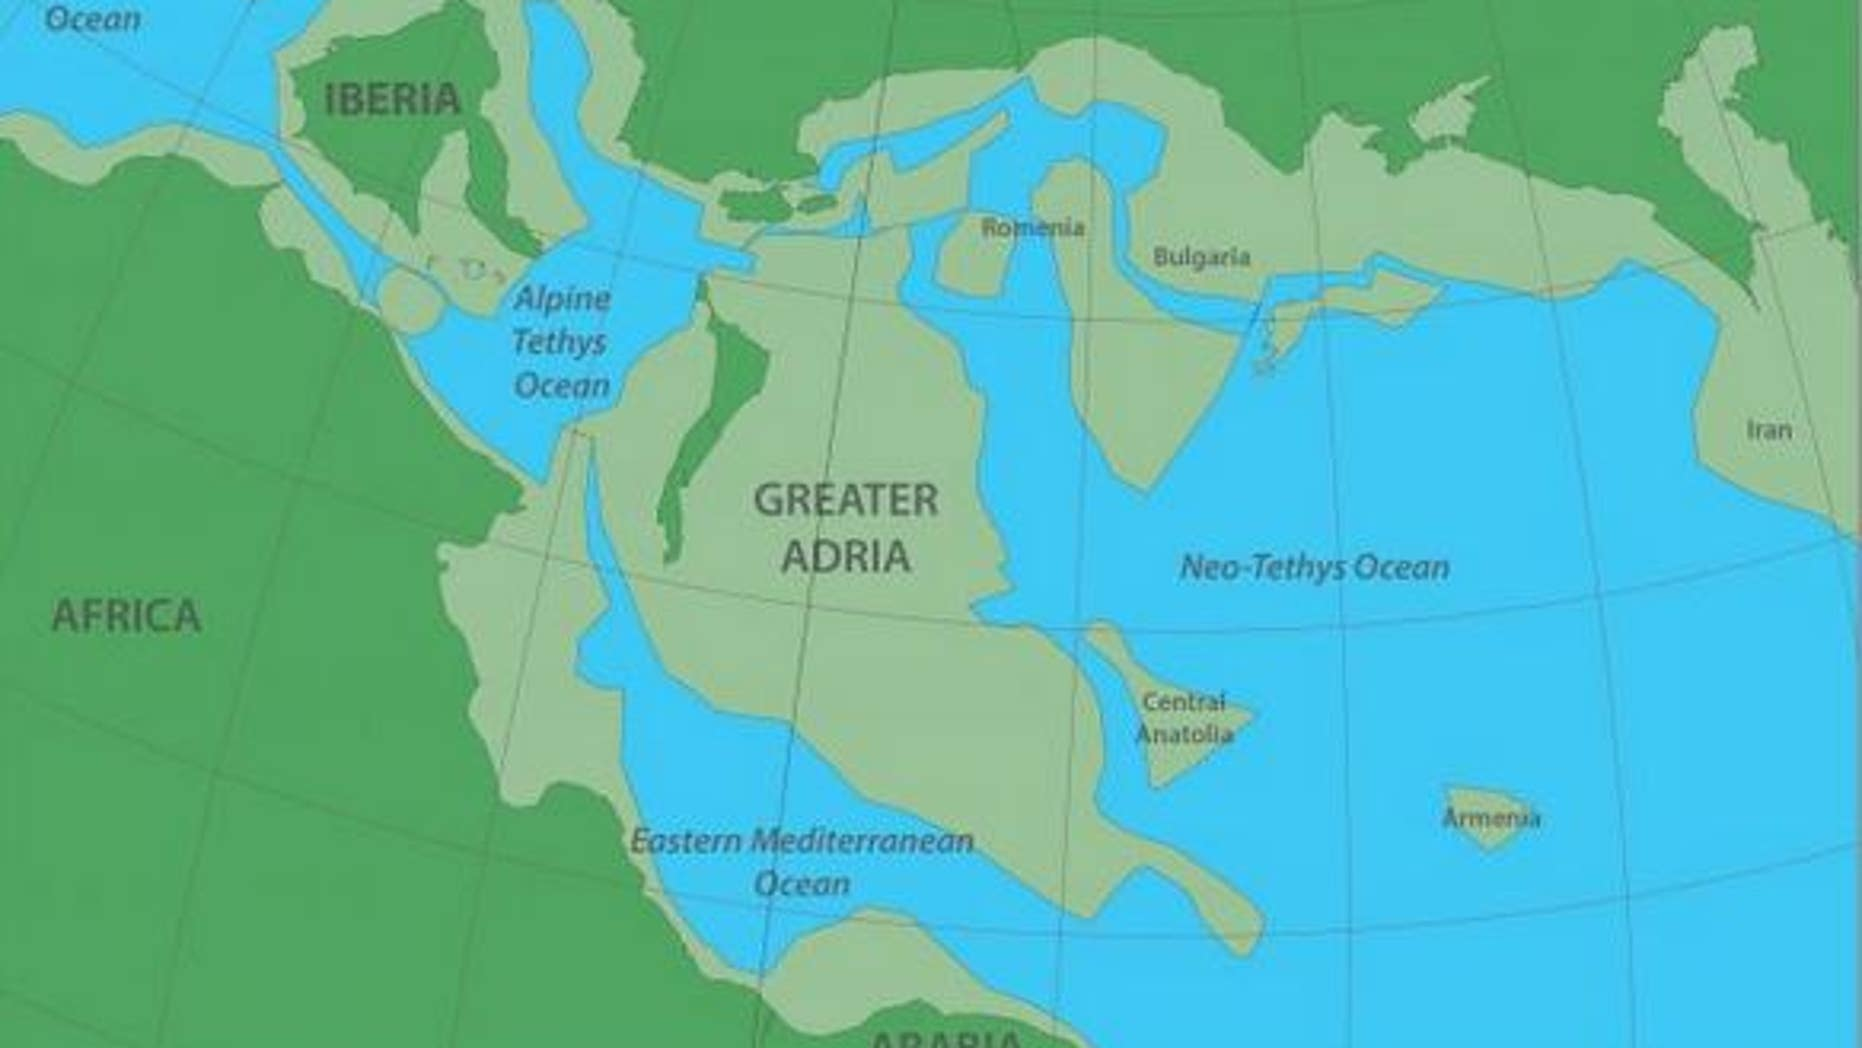 Greater Adria as it existed 140 million years ago, before sliding beneath what is now southern europe. The darker green areas depict the land above the water and the lighter green, the land below. (Image: © Douwe van Hinsbergen)